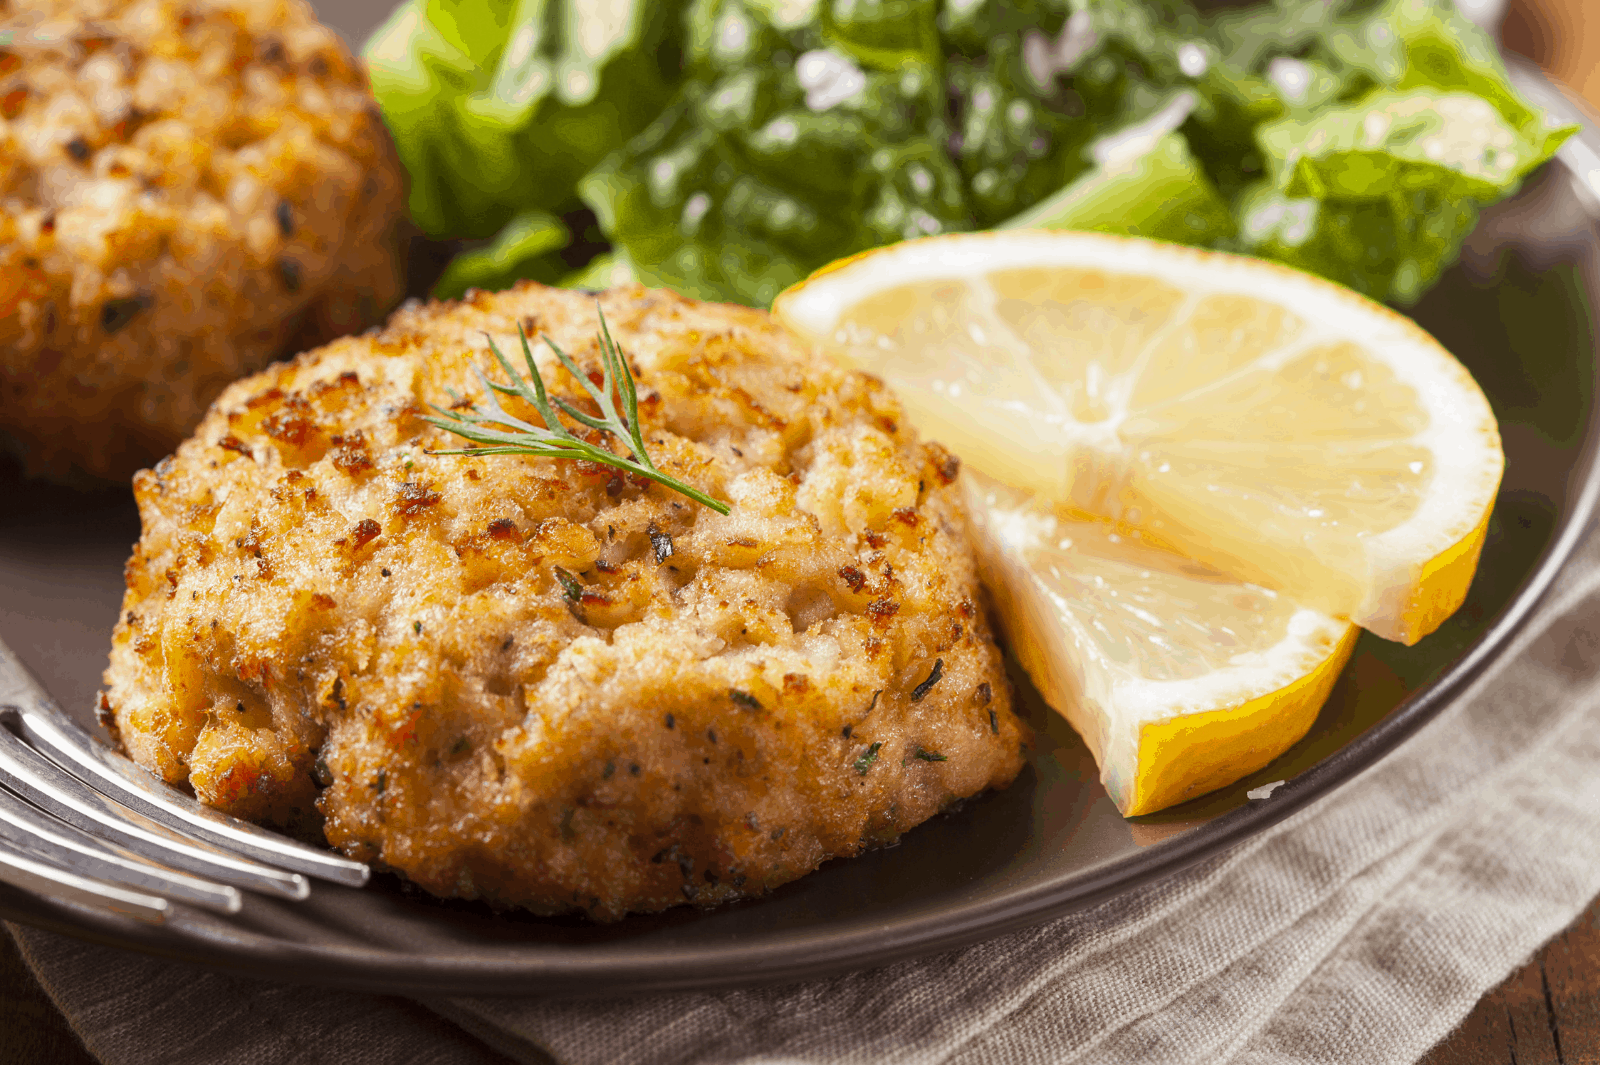 How Long to Bake Frozen Crab Cakes